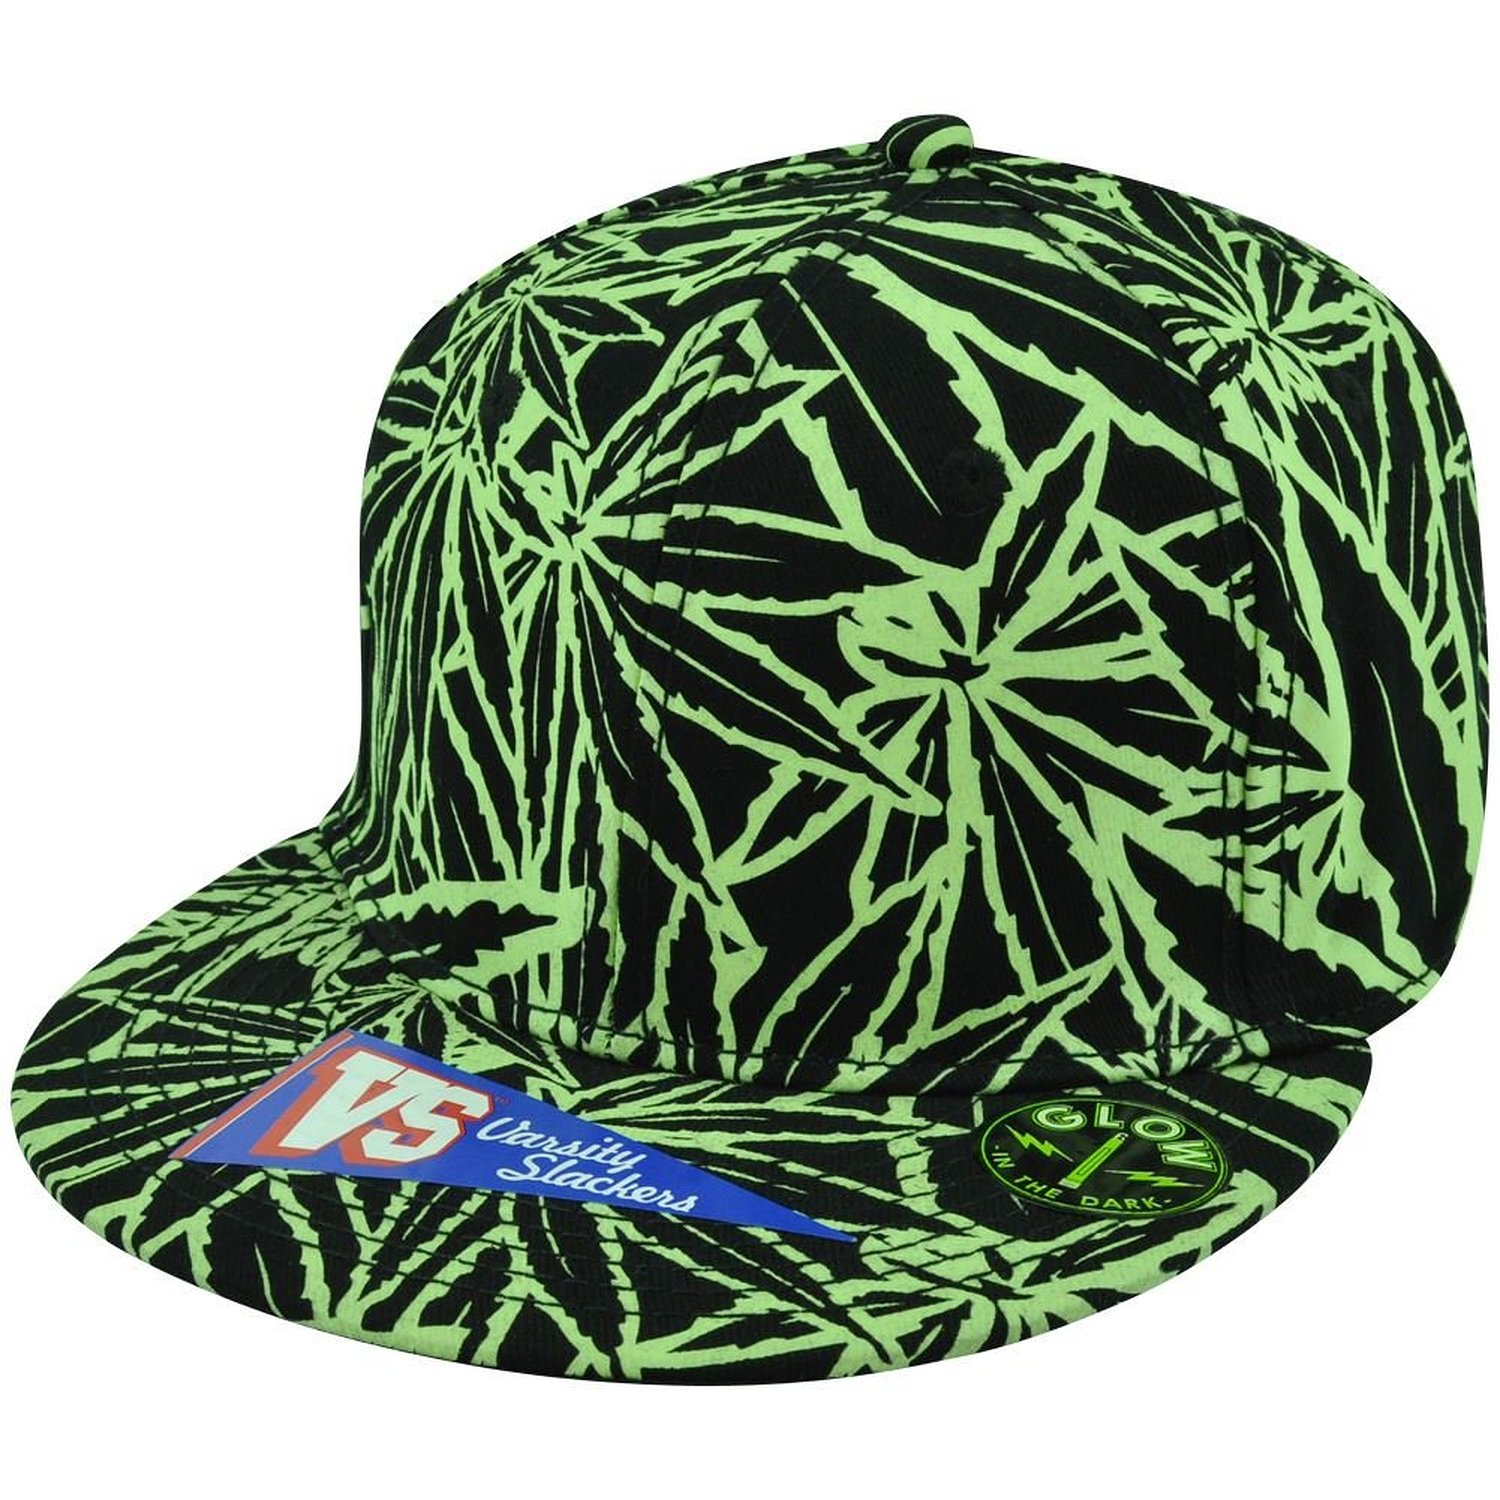 Varsity slackers marijuana one size flexfit black green glow in the dark hat cap at amazon men's clothing store: